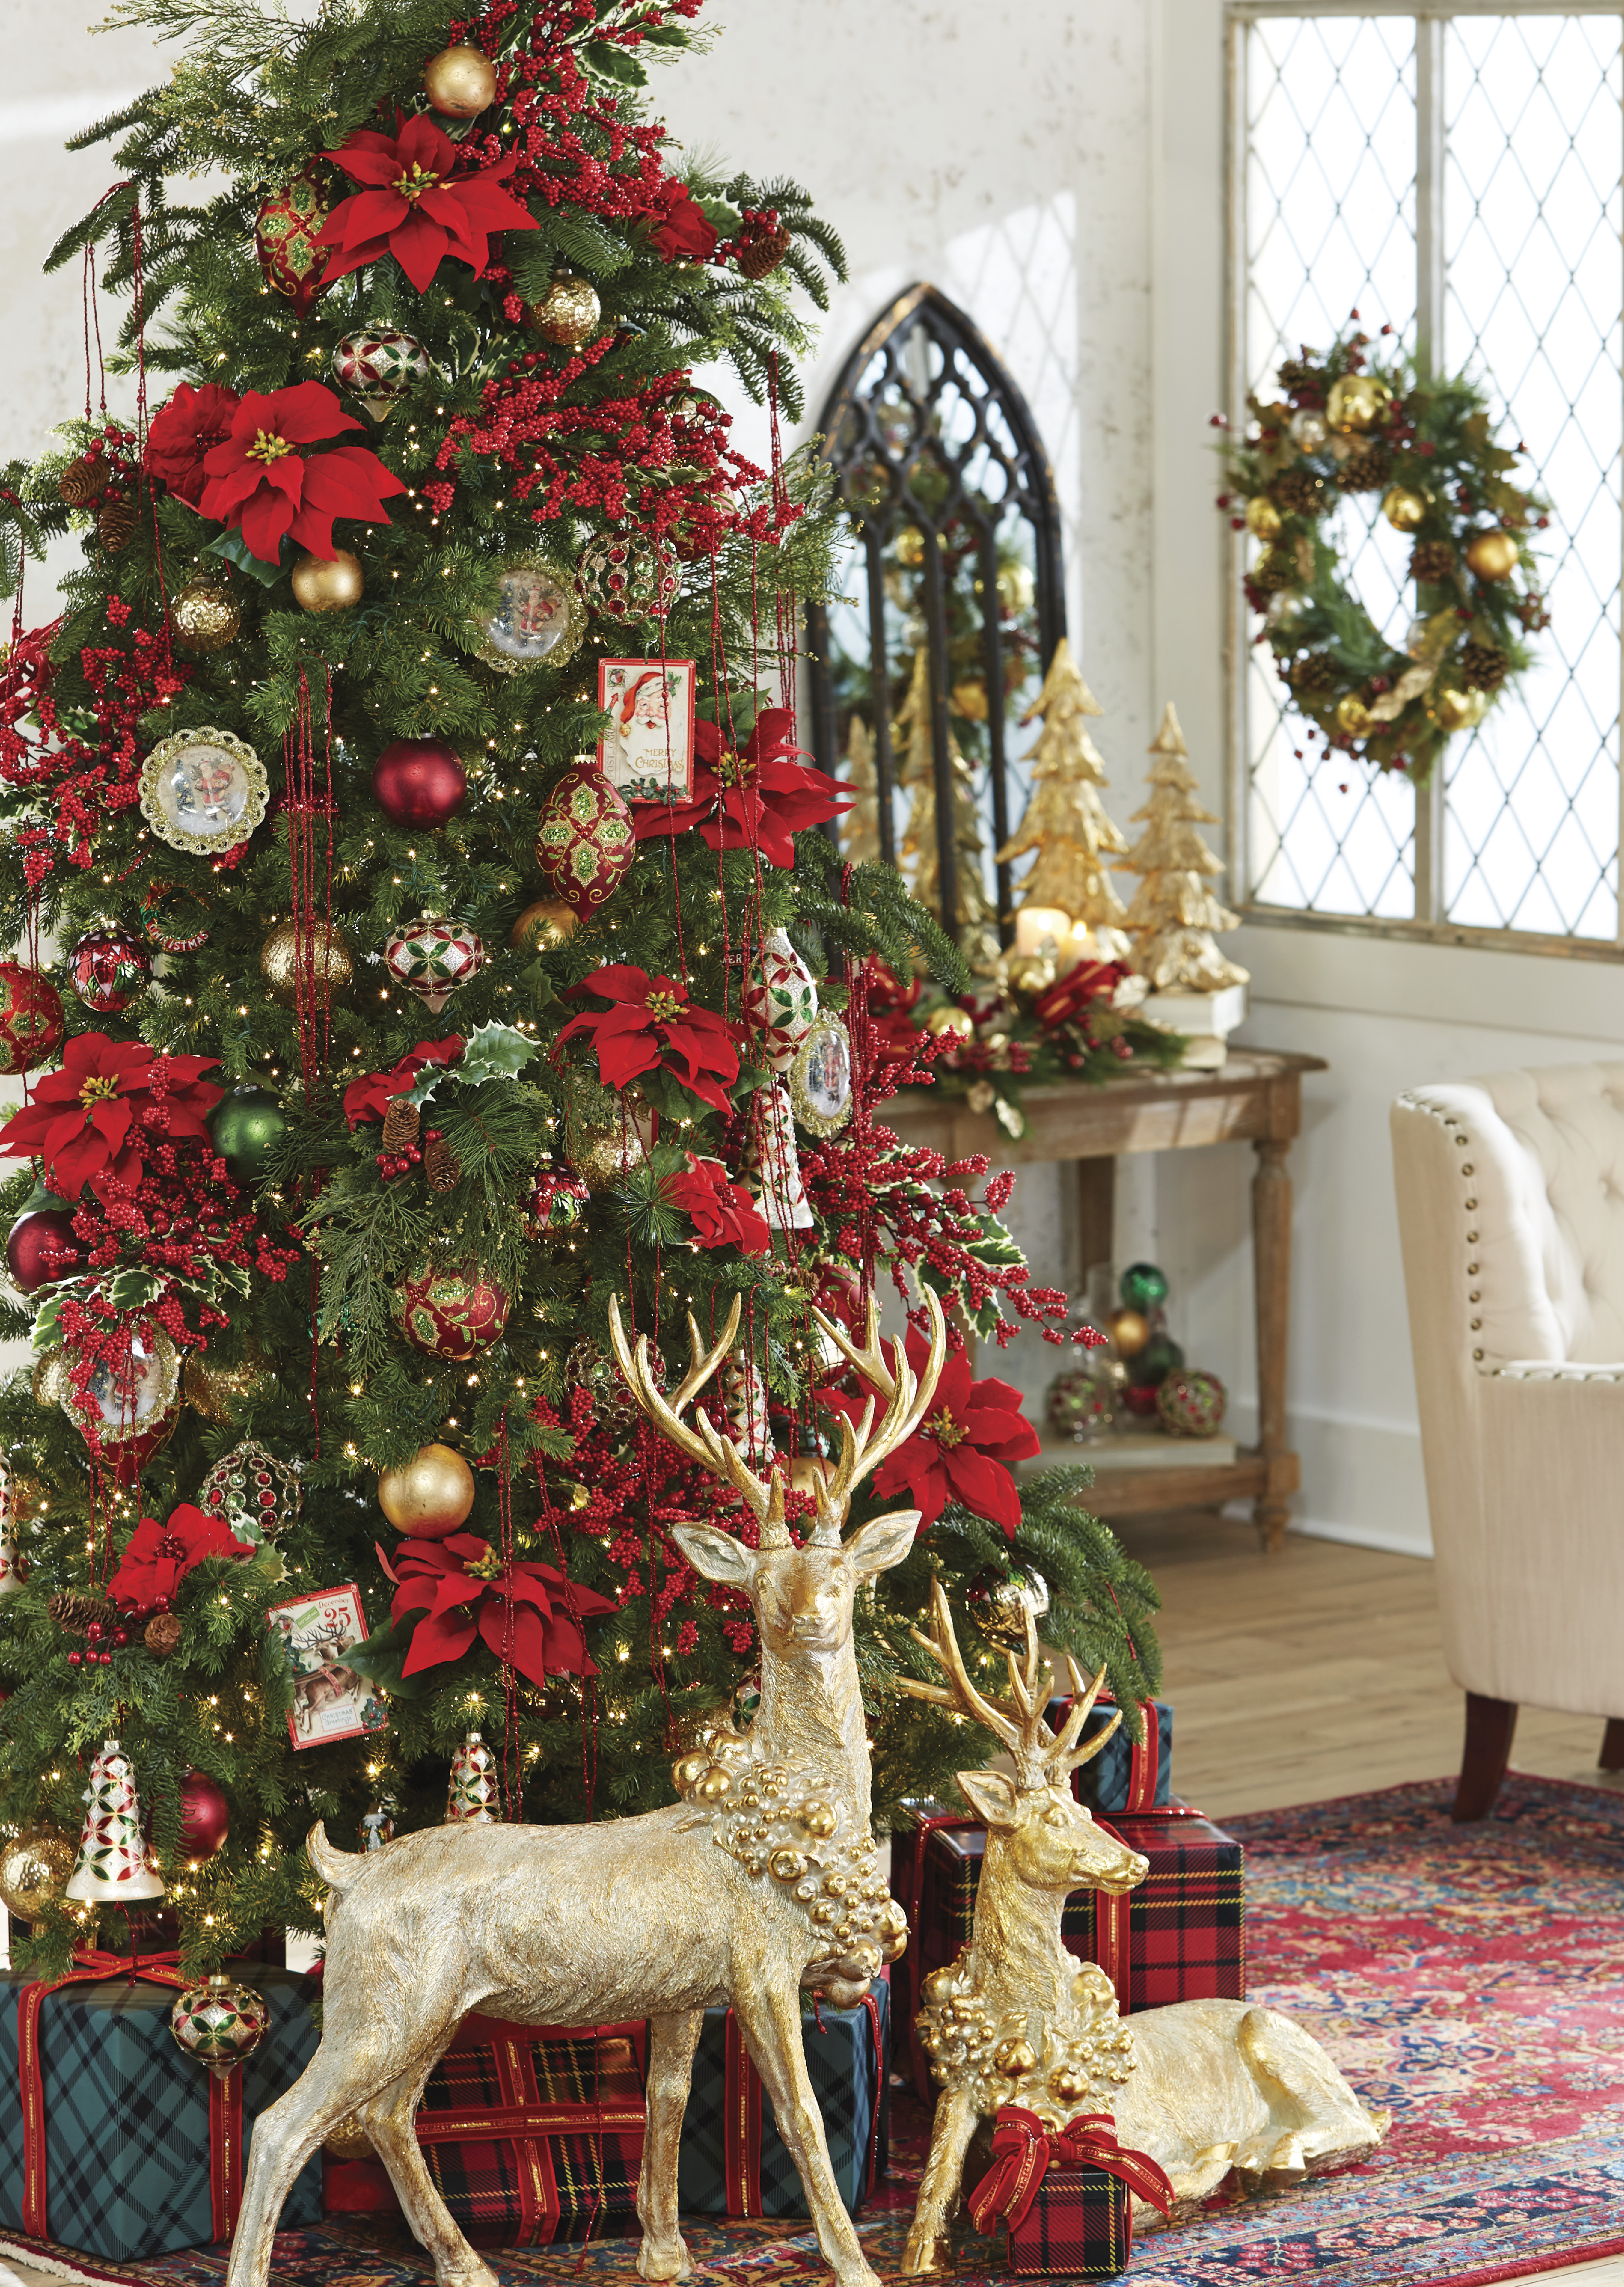 Top 9 2019 Christmas Decorating Trends - The Jolly ...